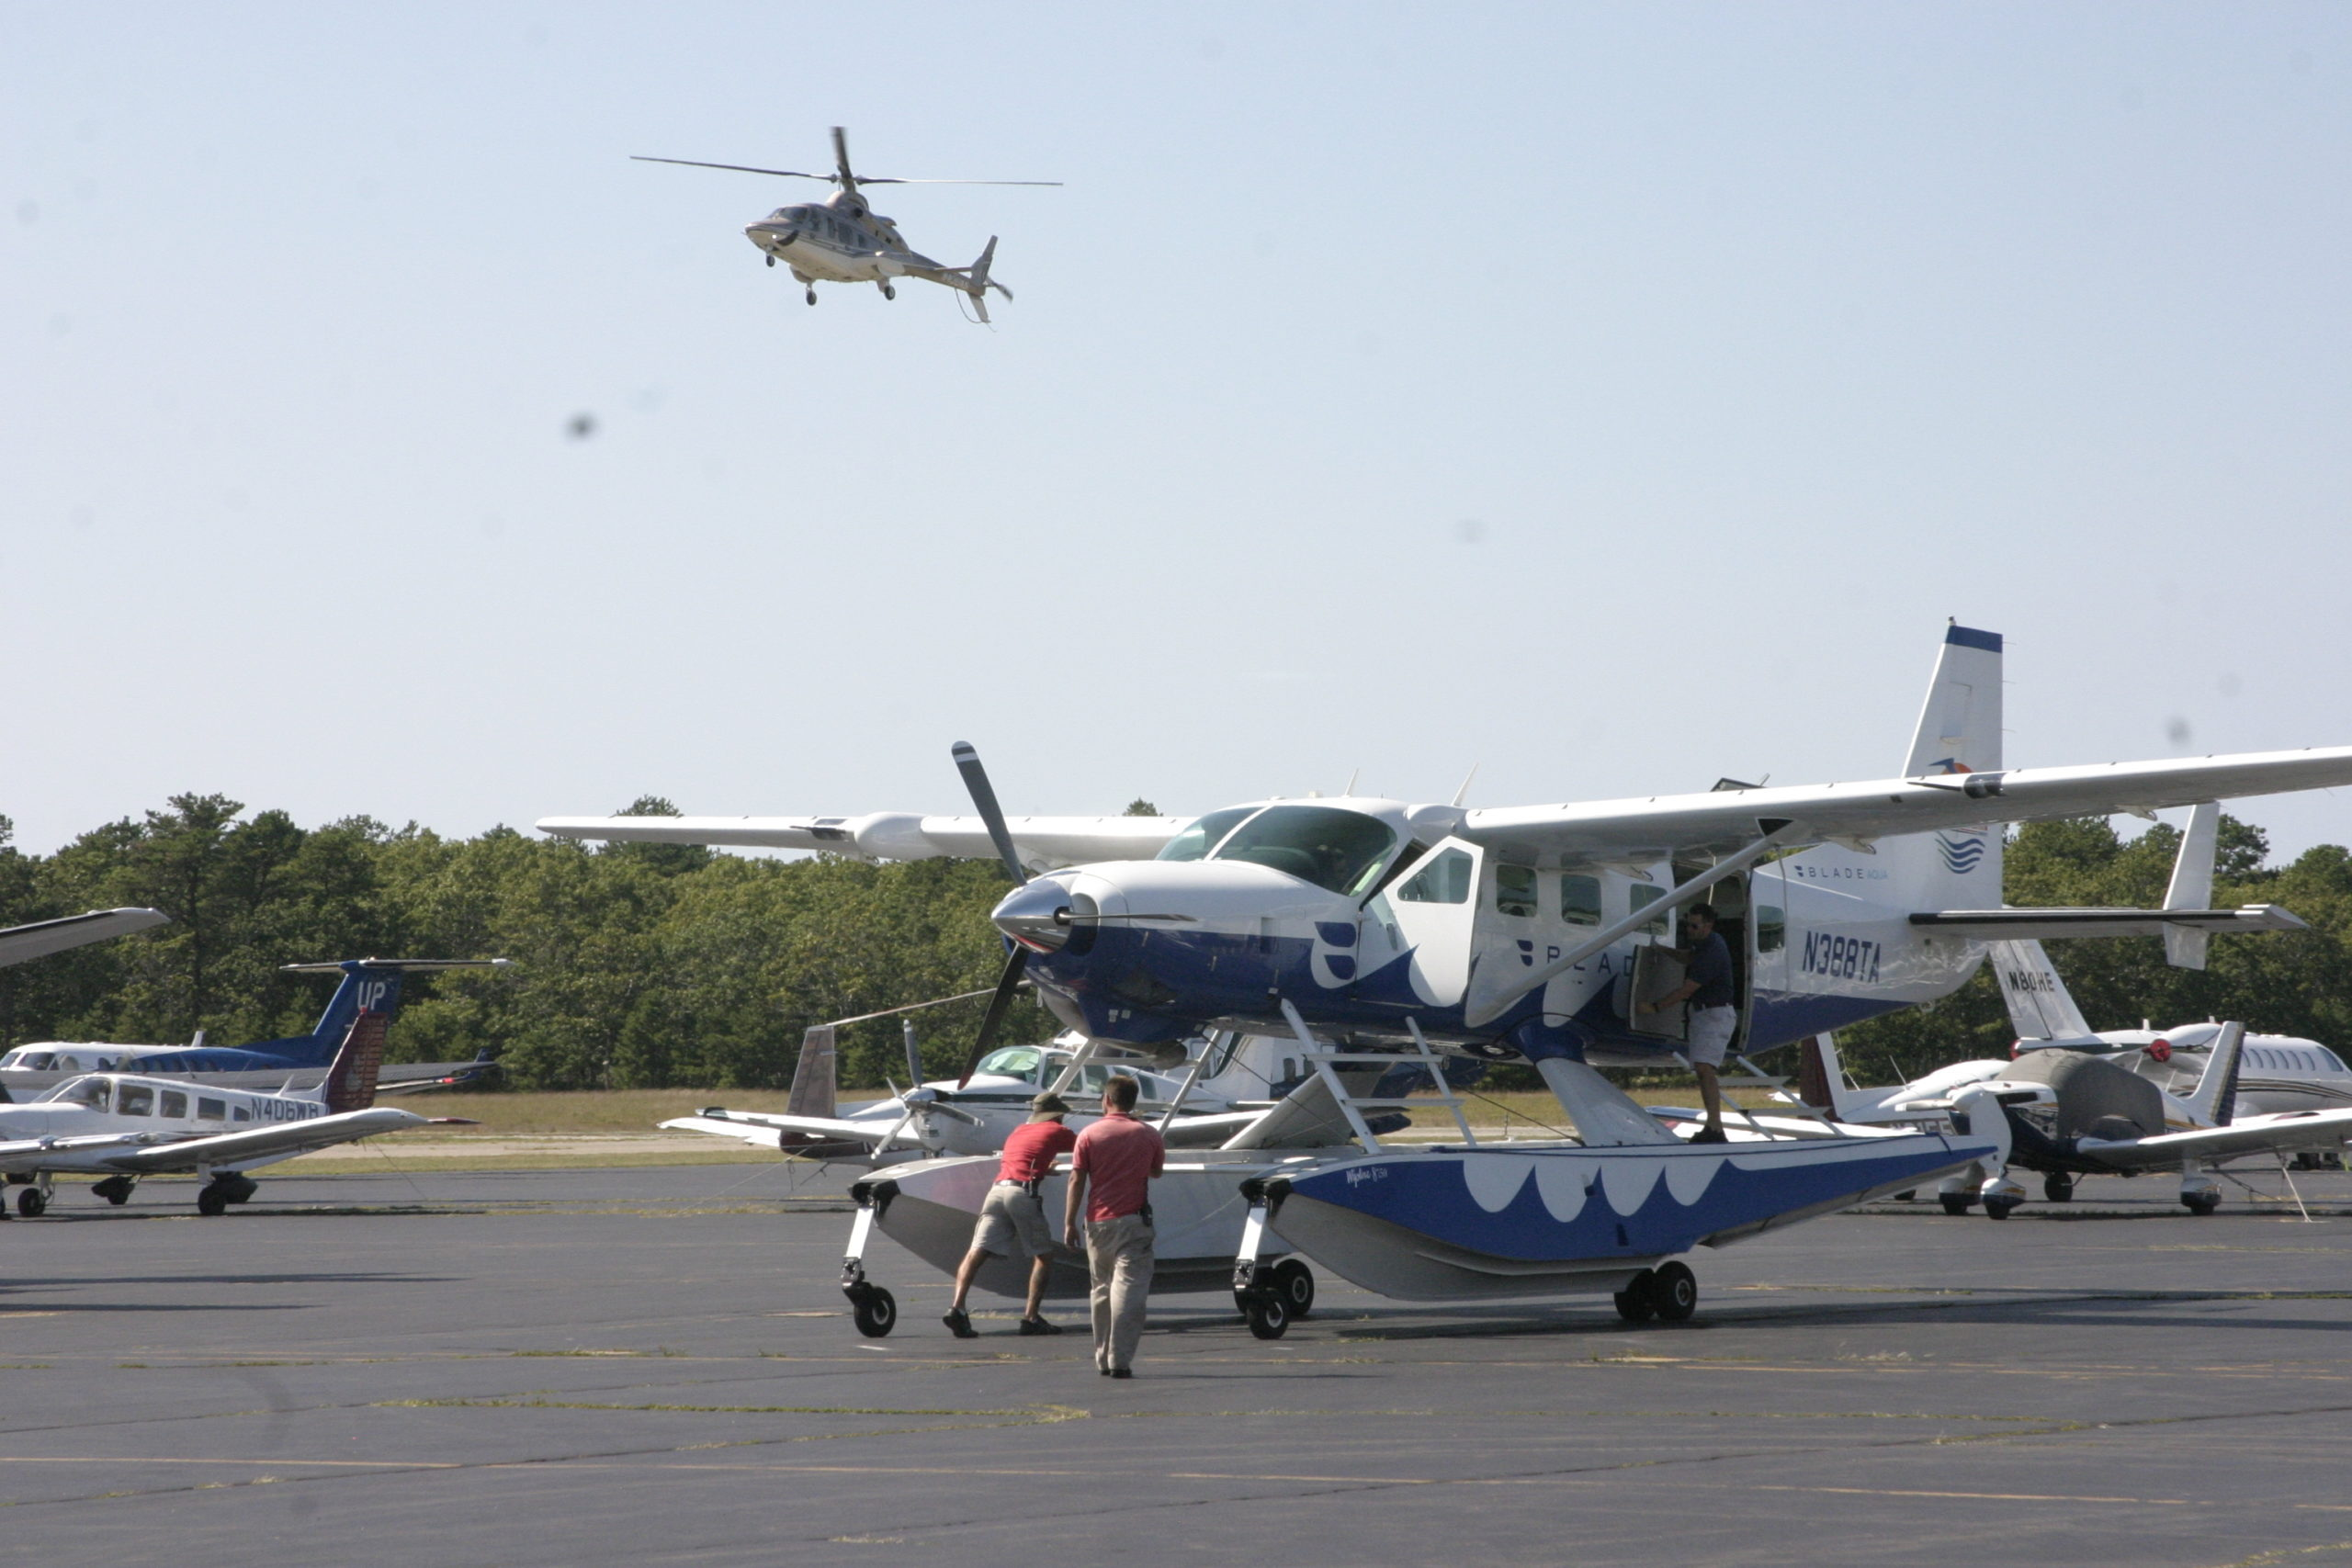 A pilots group is hoping to establish a firm set of rules for aircraft using East Hampton Airport that would demand curfews and adherence to pre-arranged flight paths, in hopes of tamping down the noise impacts on the airport.